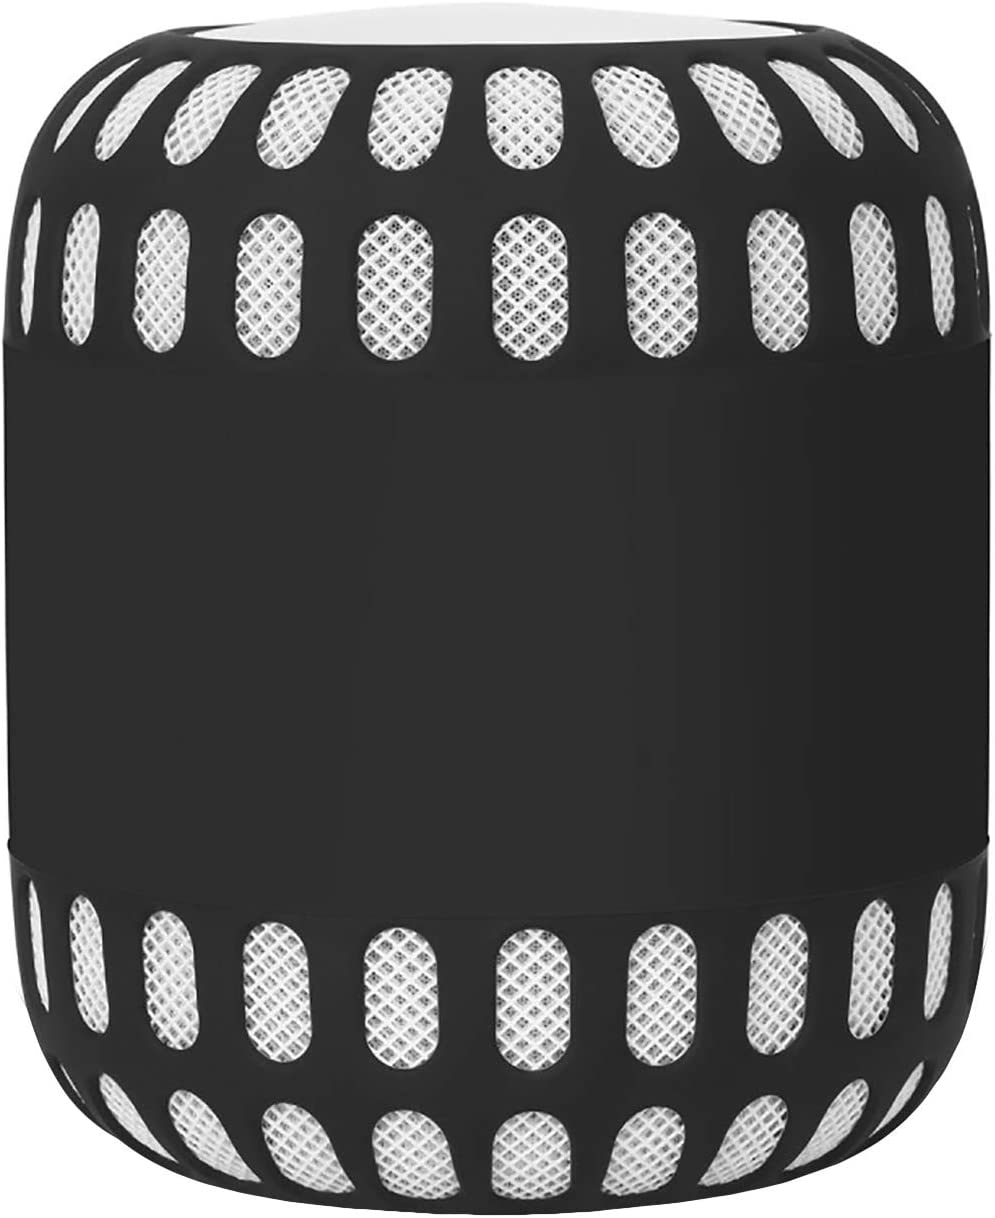 Oriolus Silicone Case Cover for Apple HomePod Smart Speaker (Black)